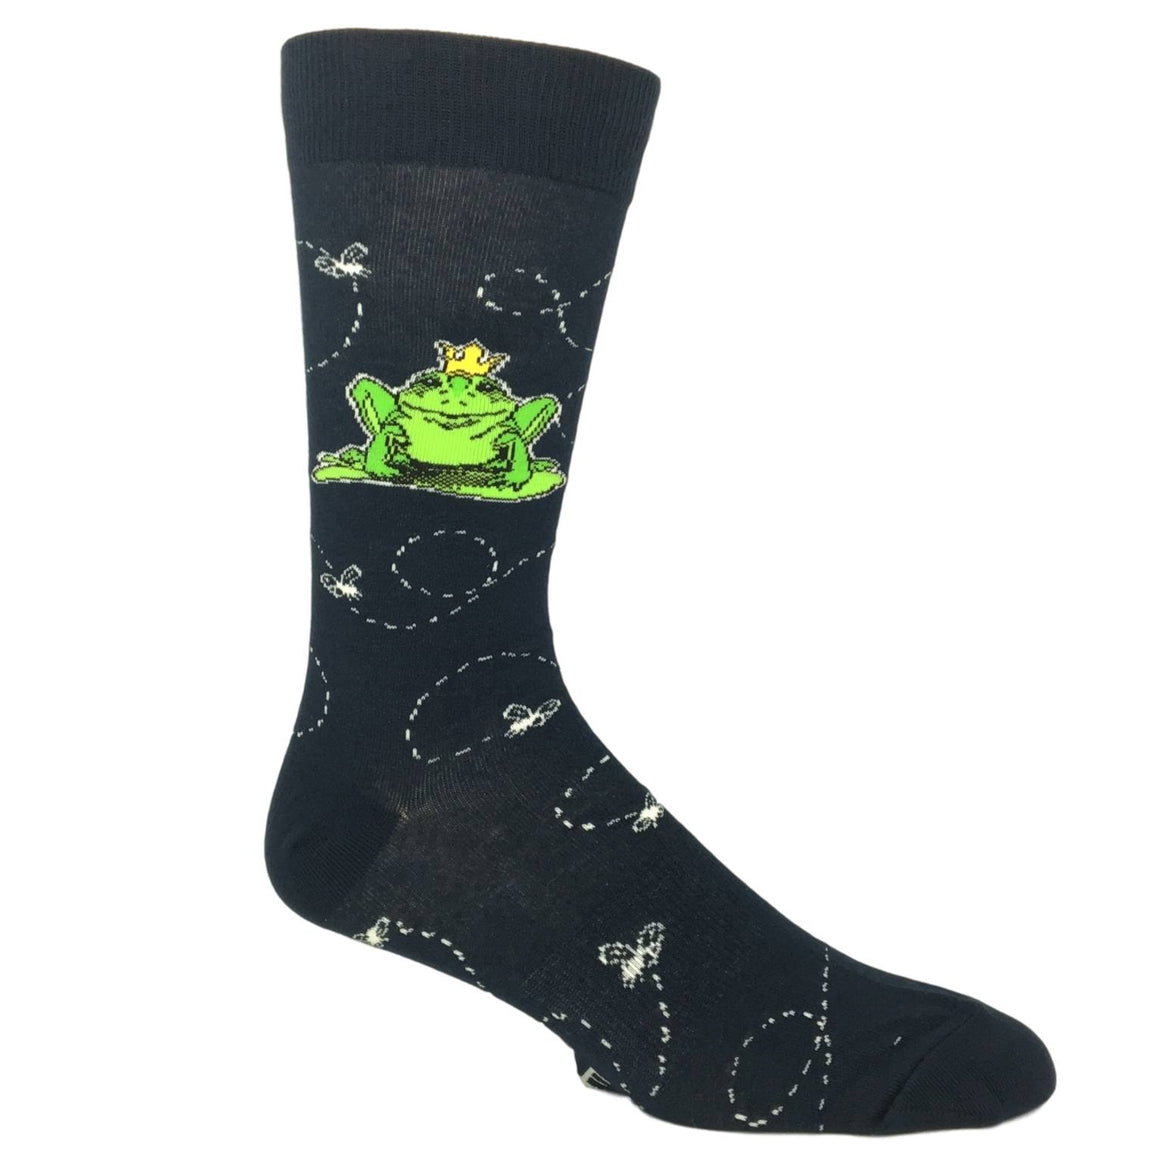 Frog Prince Socks by K.Bell - The Sock Spot